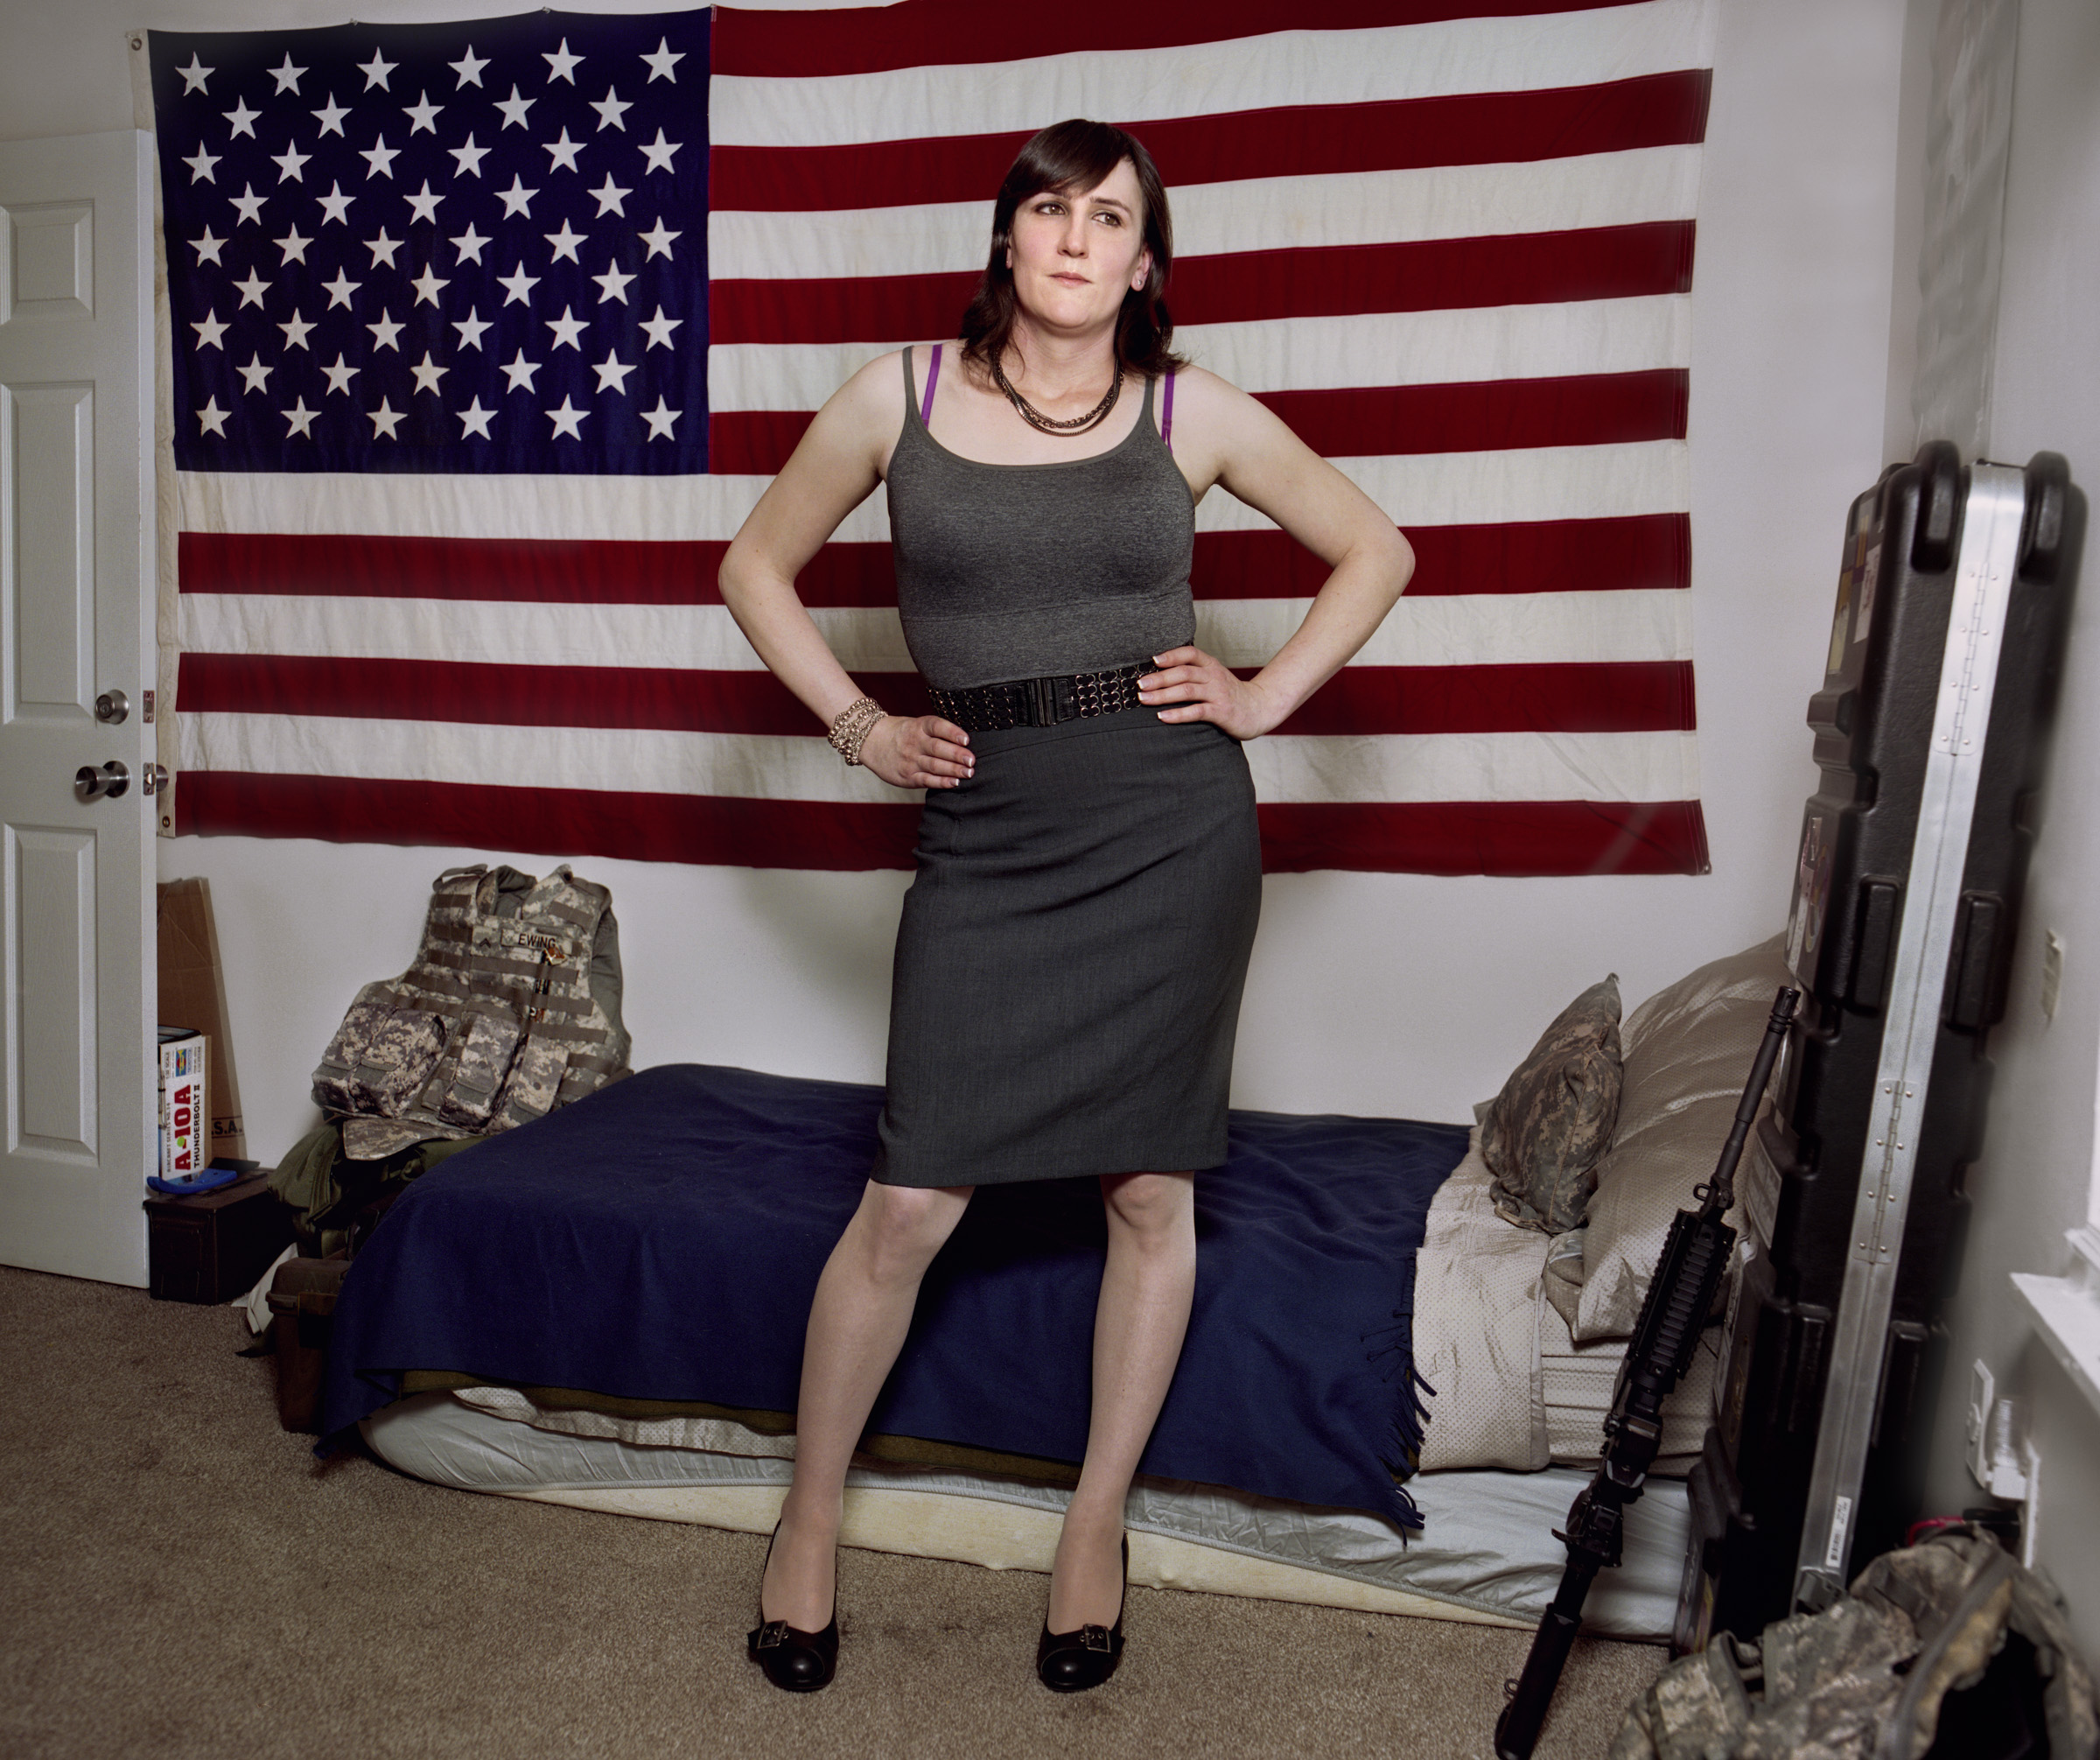 "Jamie Ewing, 2014   Jamie Ewing served in the US military for five years--until November 2013, when she was discharged for being Transgender. (The military does not allow trans people to serve openly.) Ewing is now working as a defense contractor, getting paid much more for similar work. ""I would trade my current job in a heartbeat for the Army if it meant I could wear a uniform again,"" she says. ""It's all about that sense of serving my country."" In her current role, she interacts with many of the same commanders she worked with while in uniform. ""They know me. They know my work ethic and skill sets, and they have no issues,"" the 28-year-old says. ""I'm still the same person."""